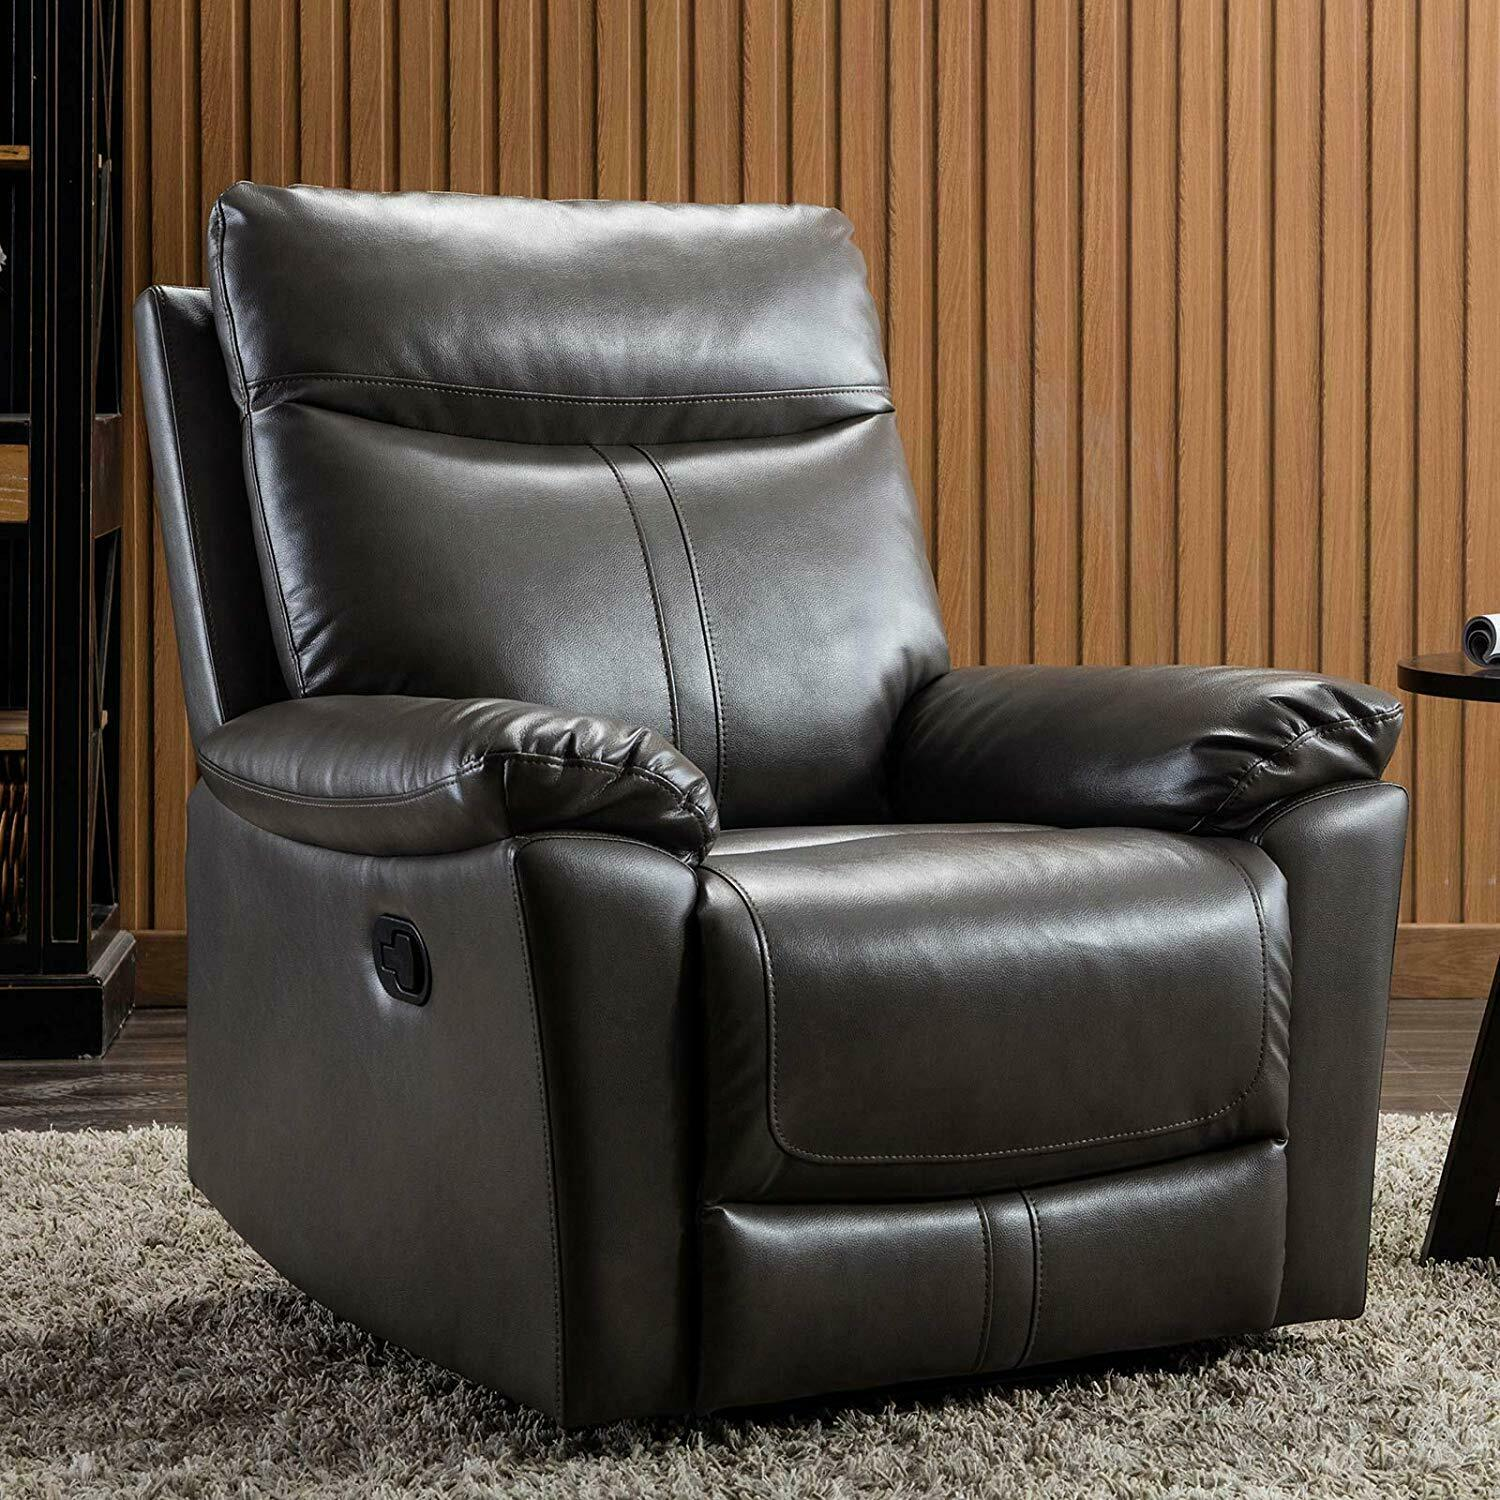 Manual Recliner Chair PU Leather Sofa Padded Durable Living Room Reclining Chair